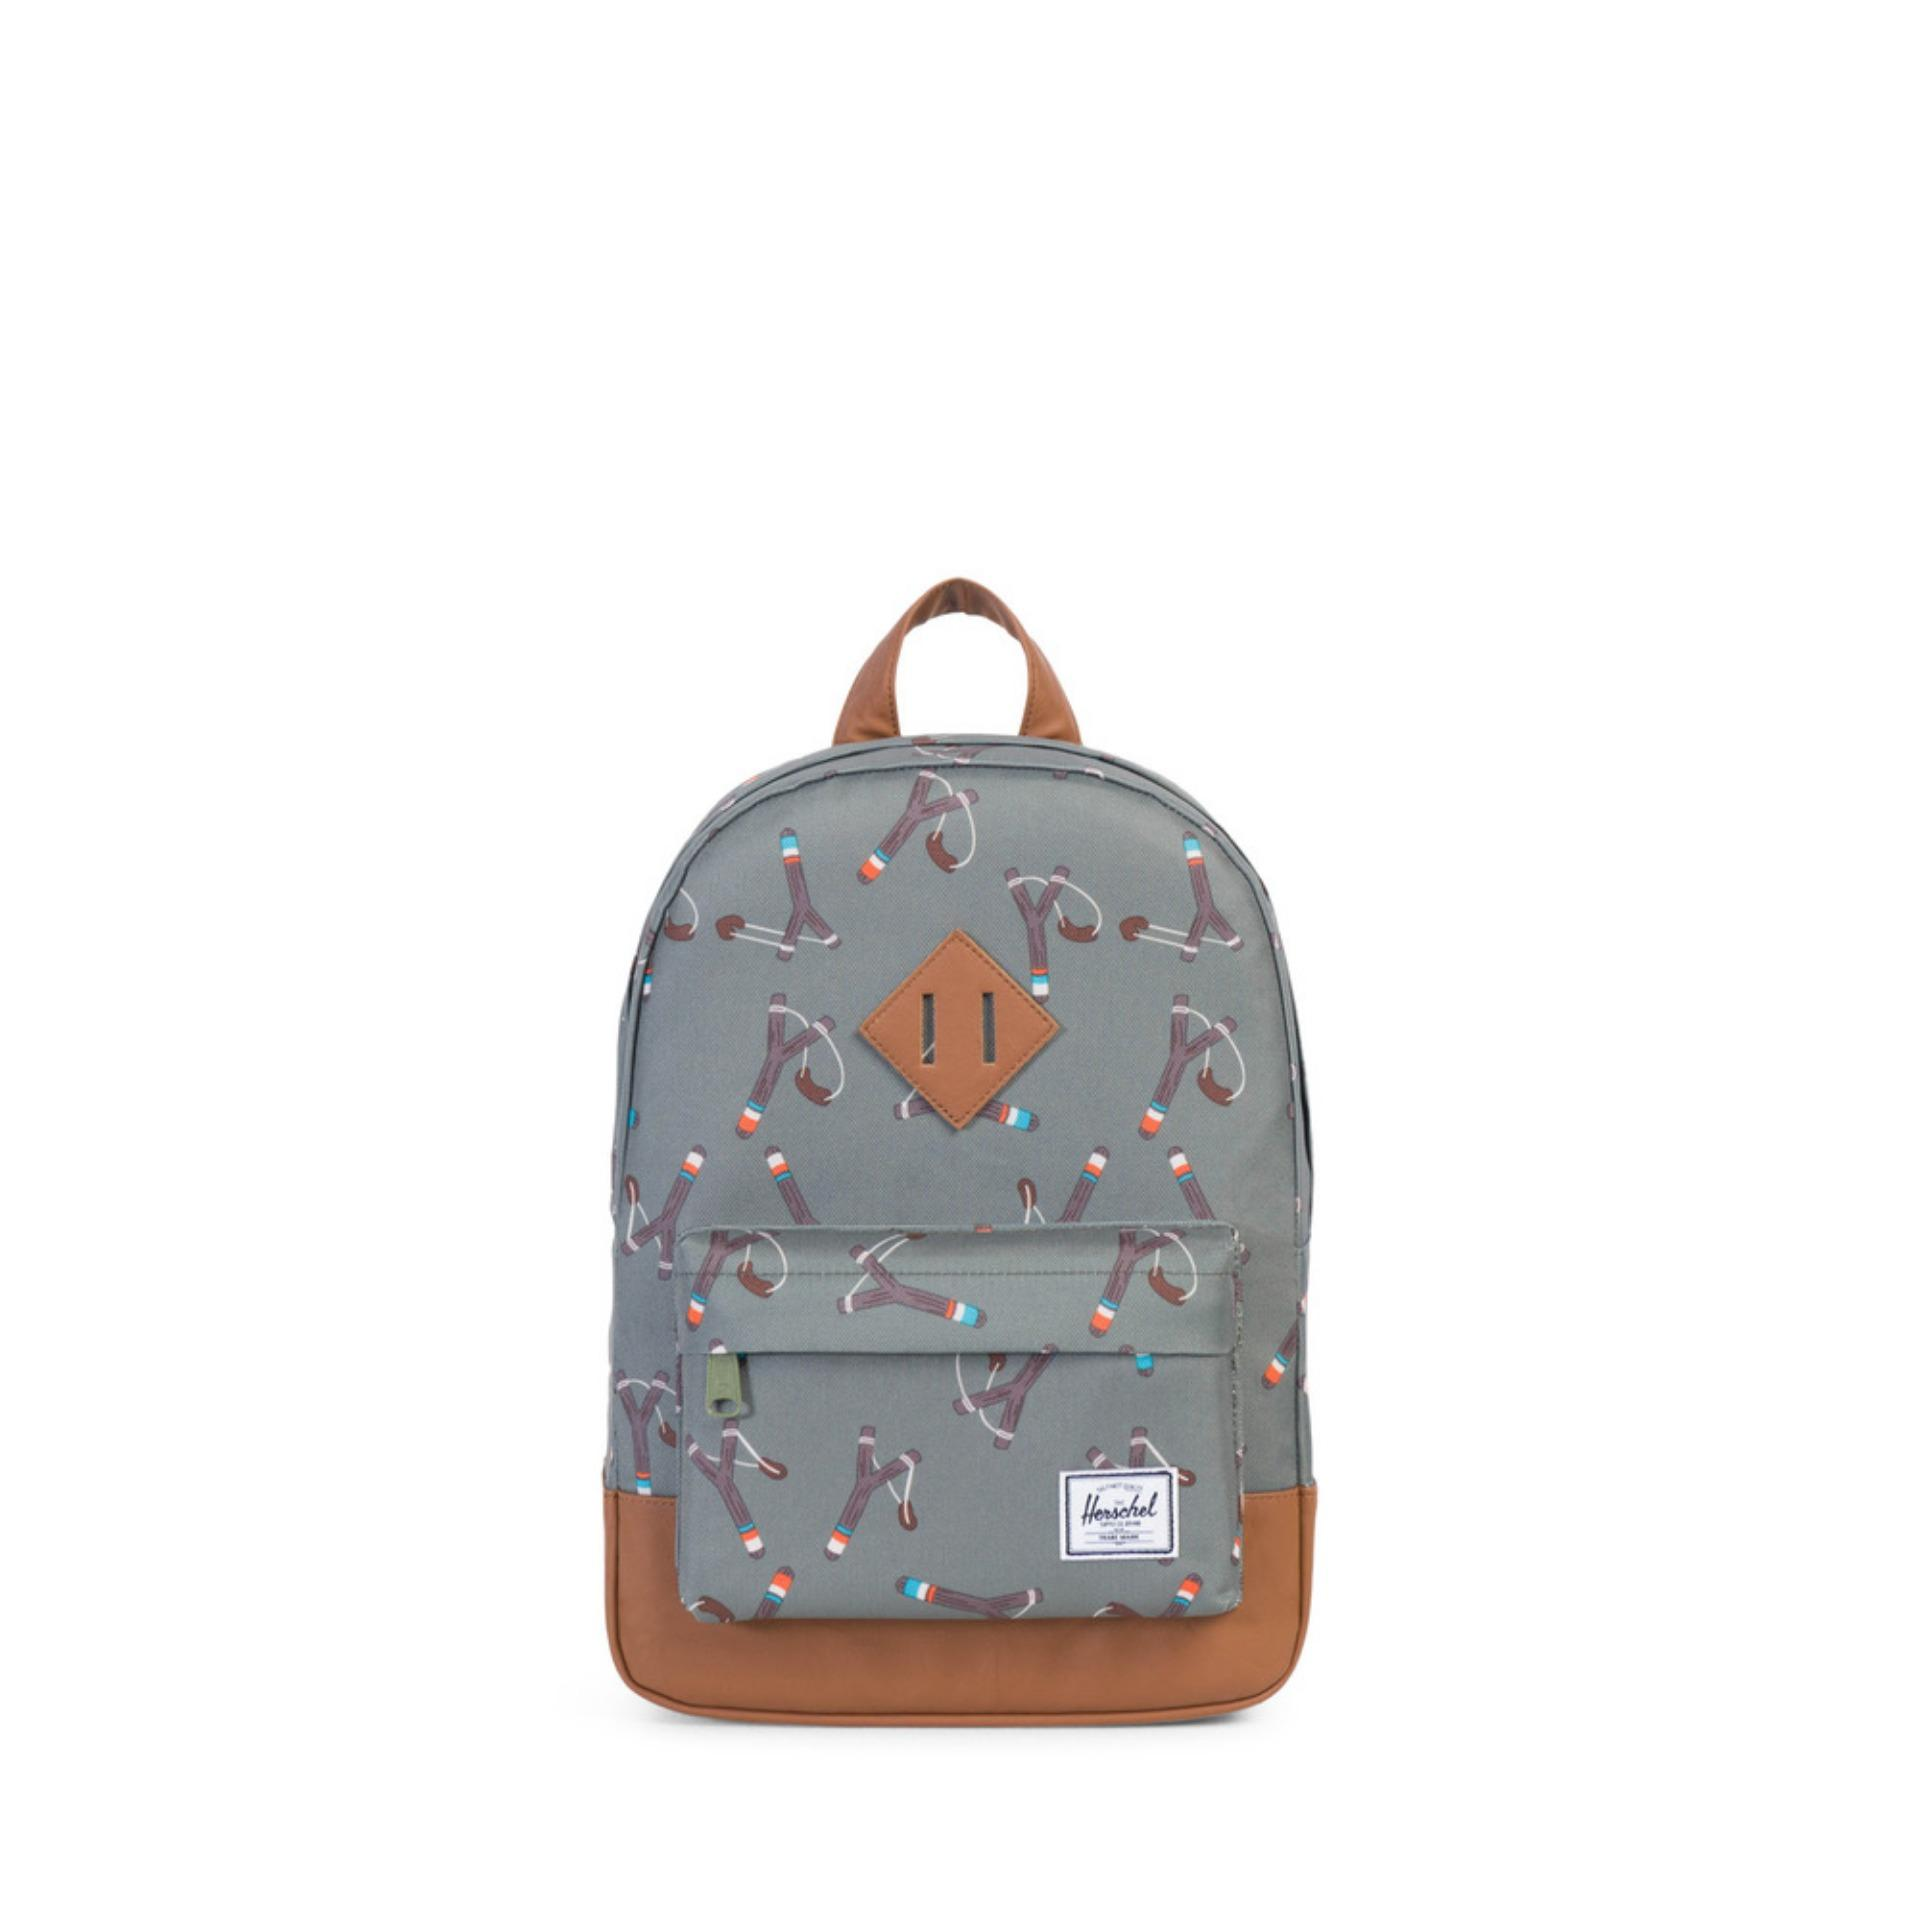 HERSCHEL HERITAGE K - Sticks & Stones/Tan Synthetic Leather